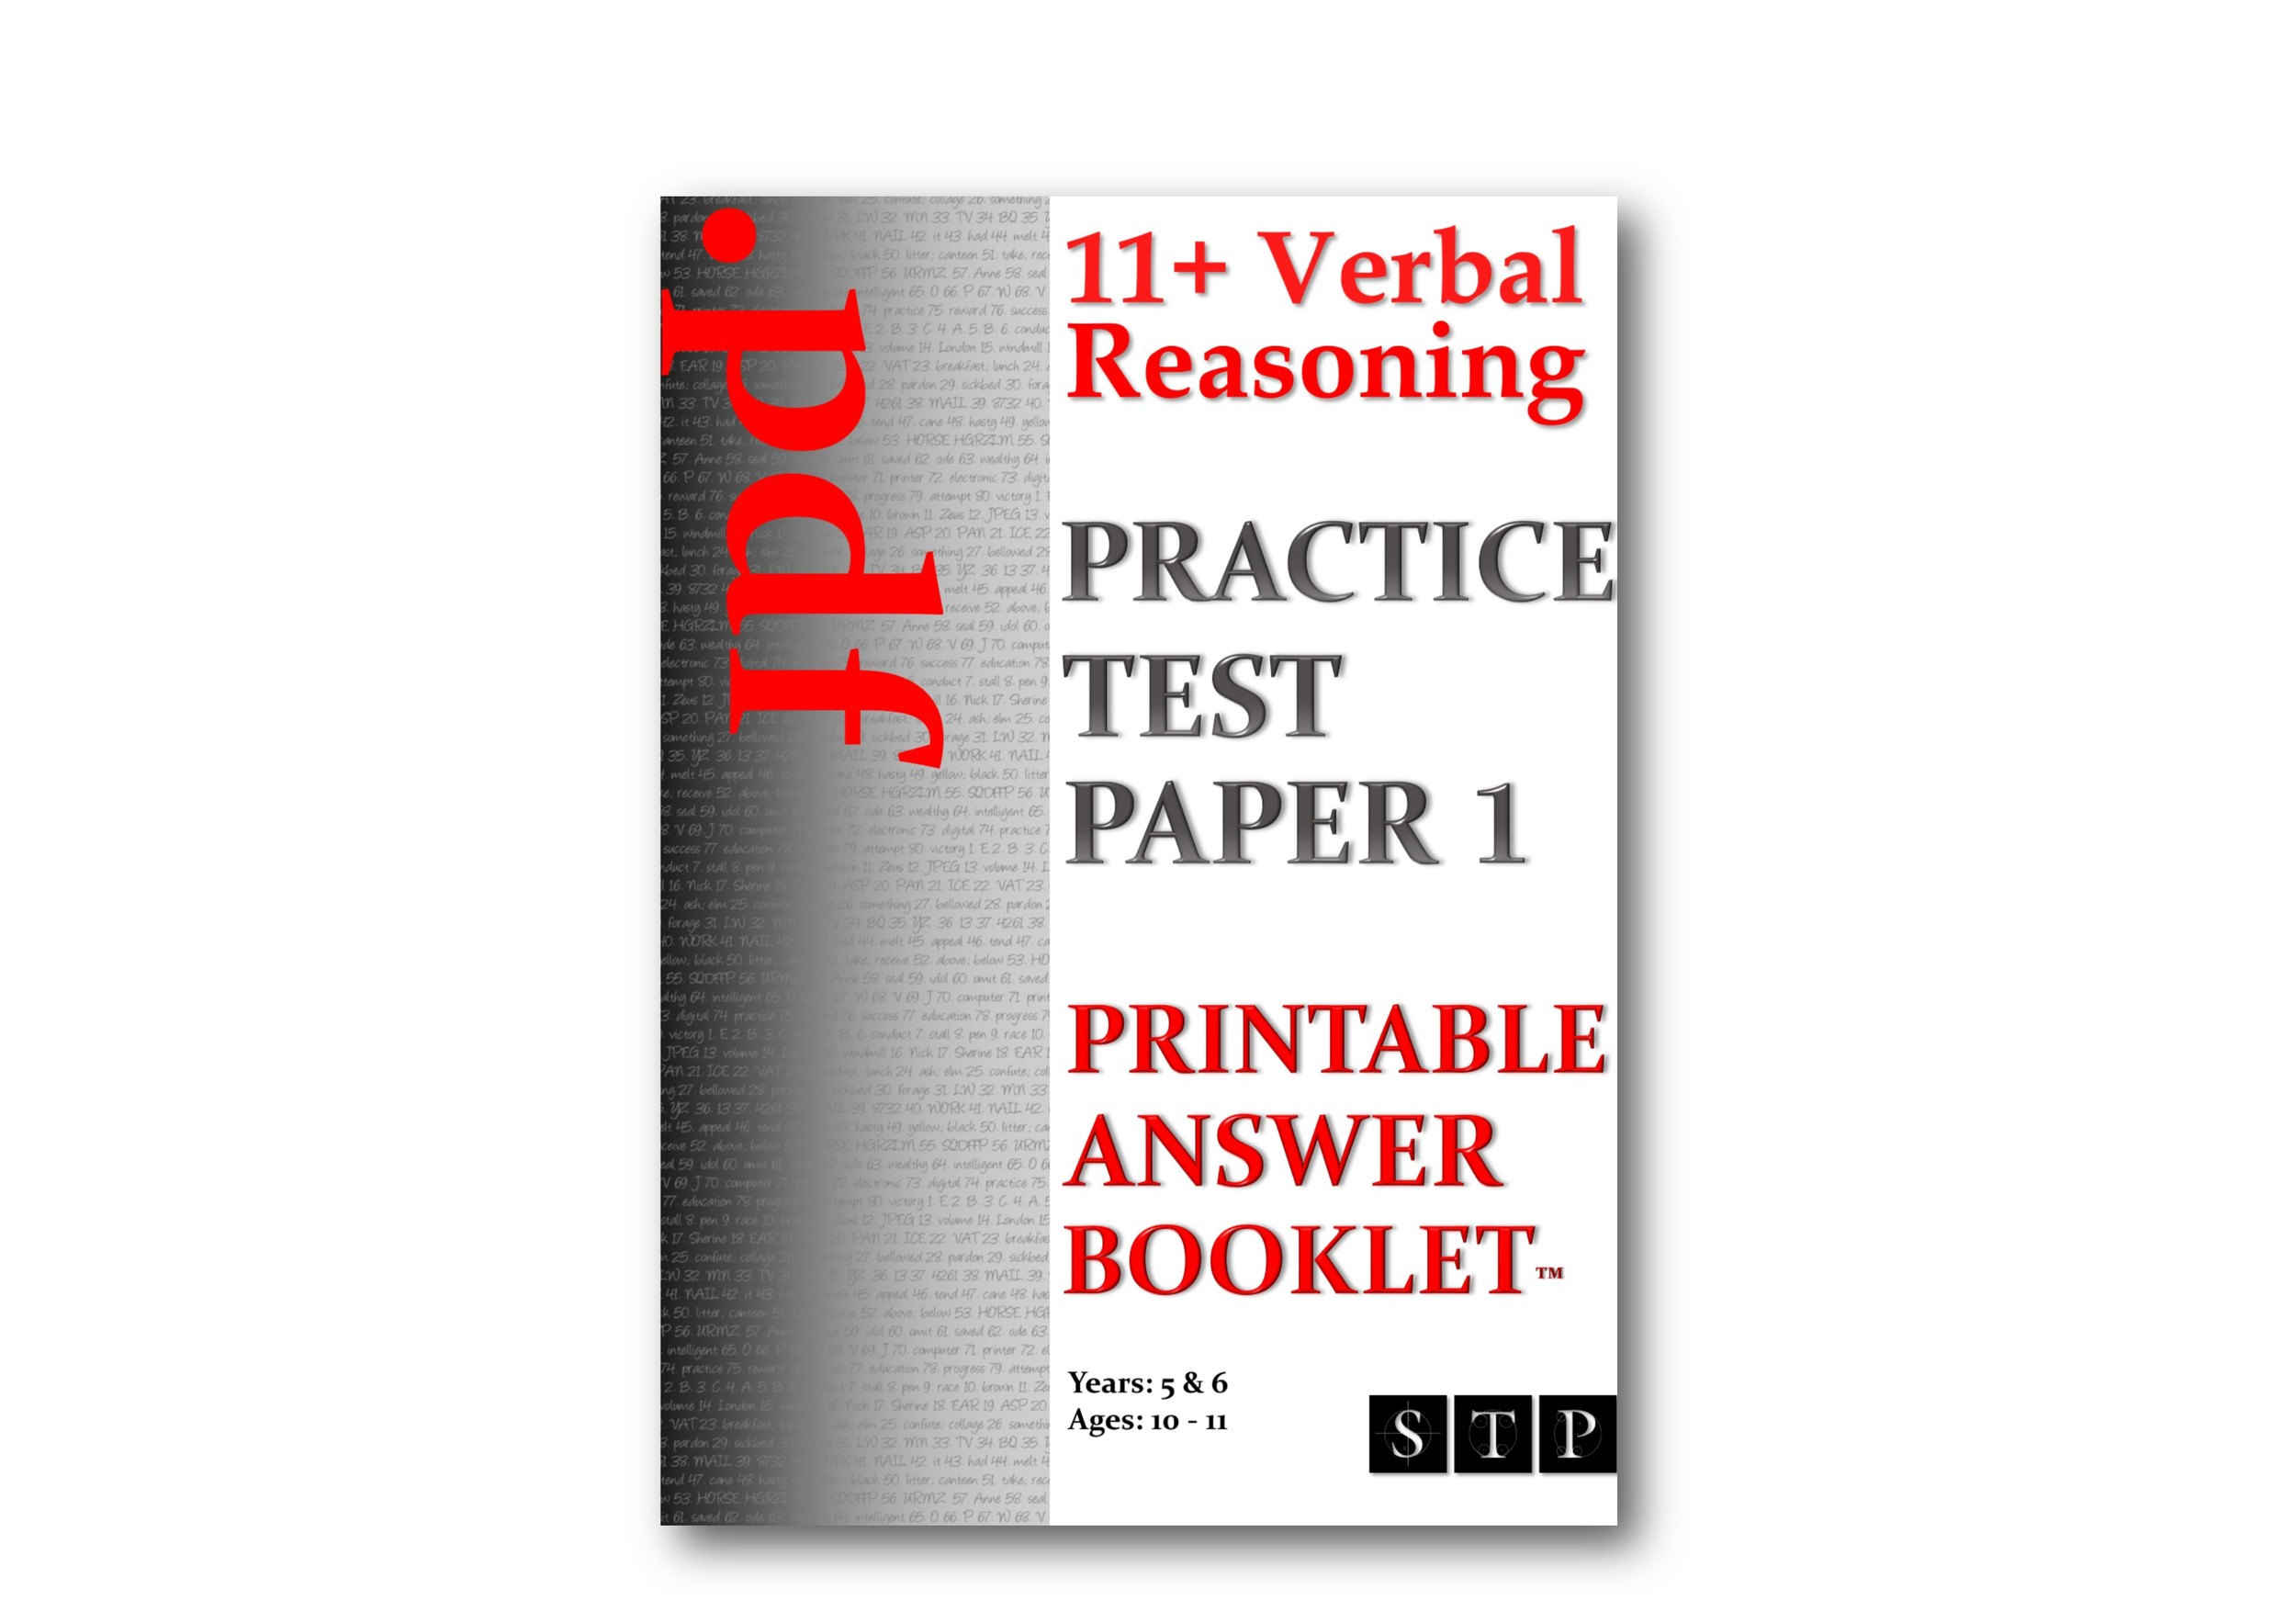 11+ Verbal Reasoning Practice Test Paper 1 (Printable Answer Booklet).jpg